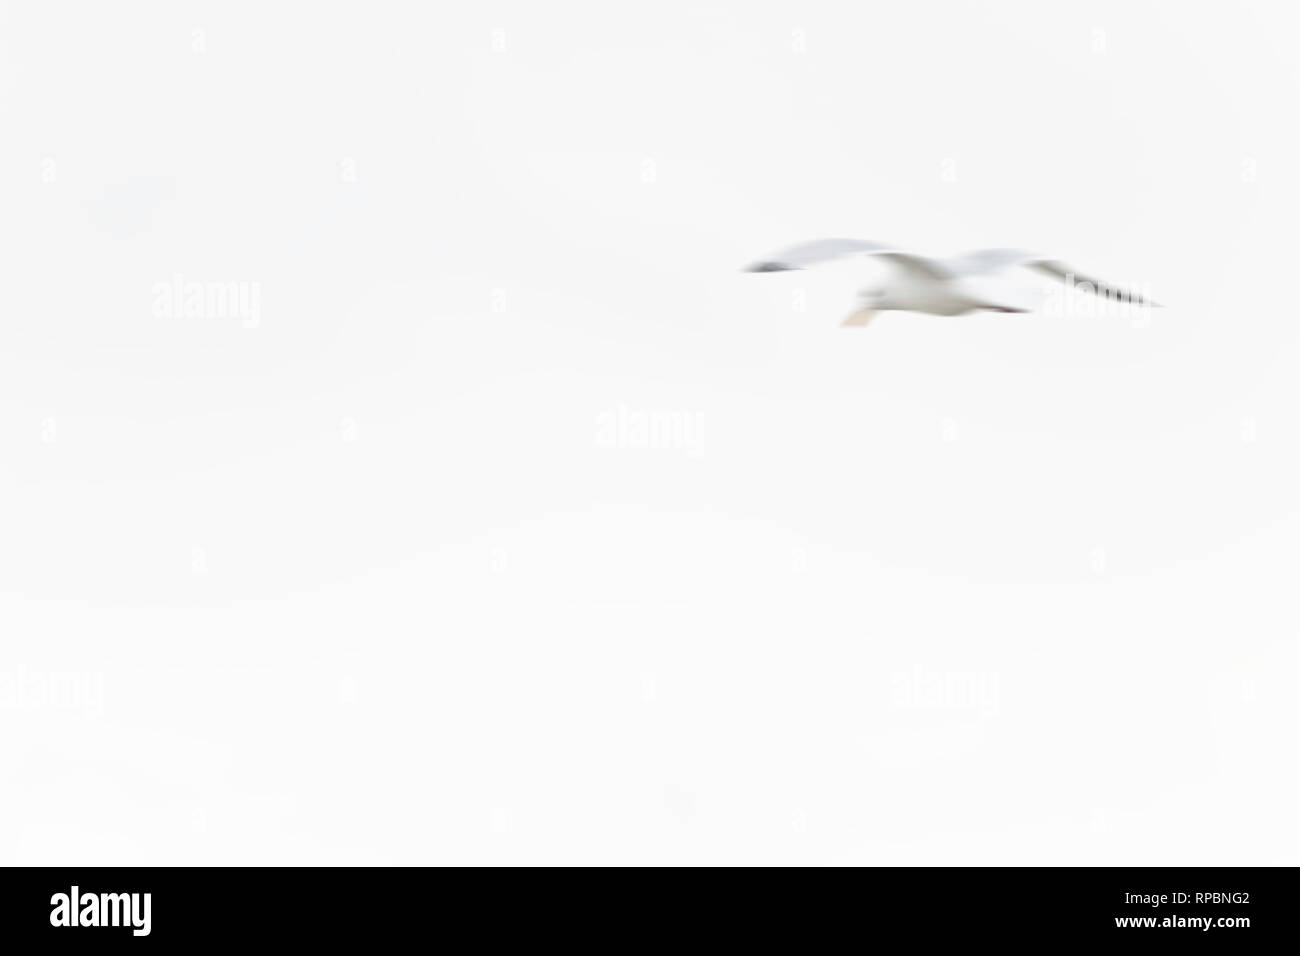 Abstract of white seagull flying in the air - Stock Image